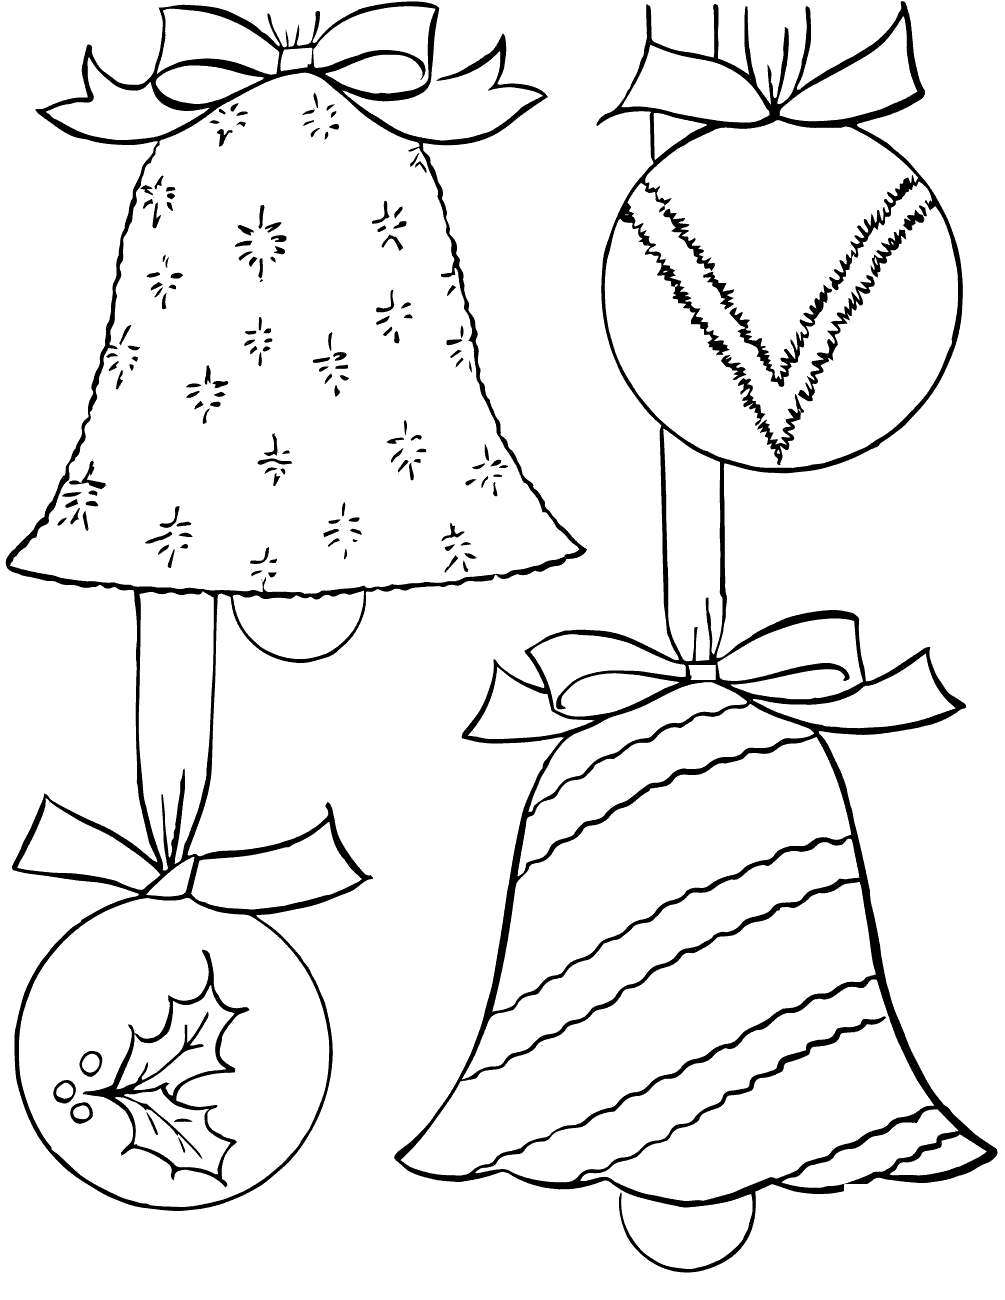 image relating to Coloring Pages Christmas Ornaments Printable identified as Printable Xmas Decorations Coloring Internet pages Ornament